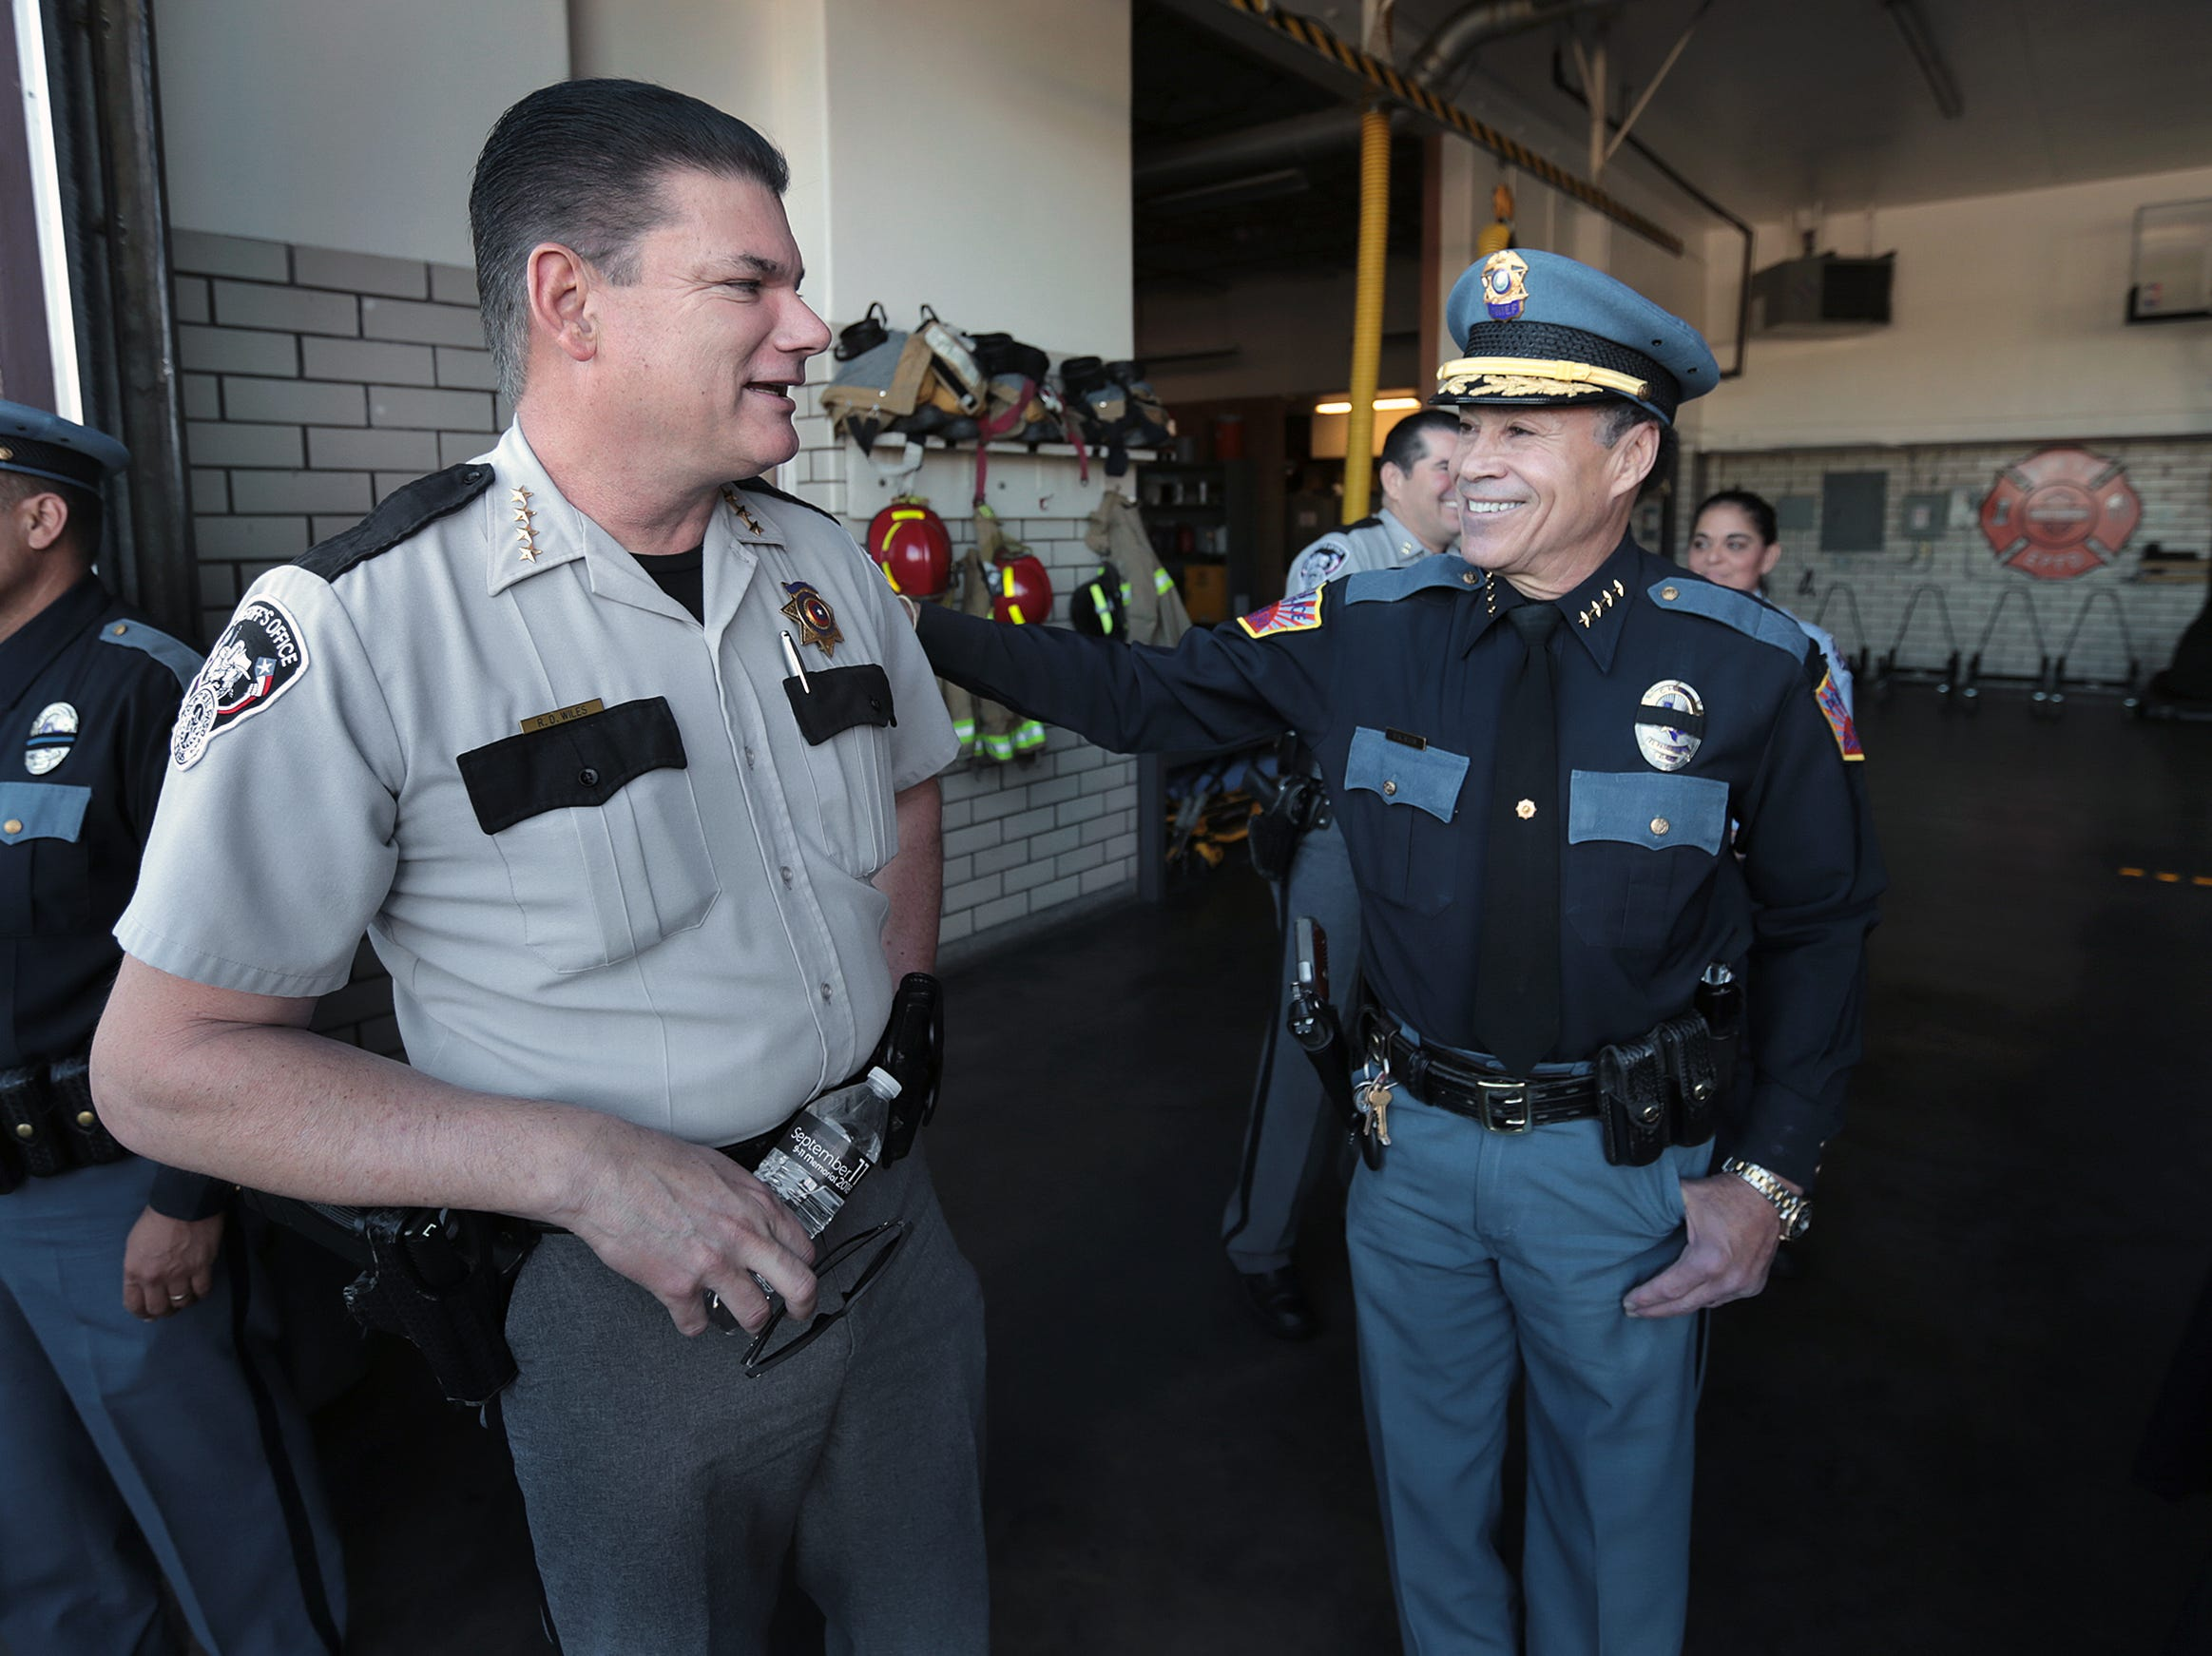 El Paso County Sheriff Richard Wiles, left, talks with El Paso Police Chief Greg Allen during the 9/11 Memorial Ceremony Tuesday at Fire Station 18.